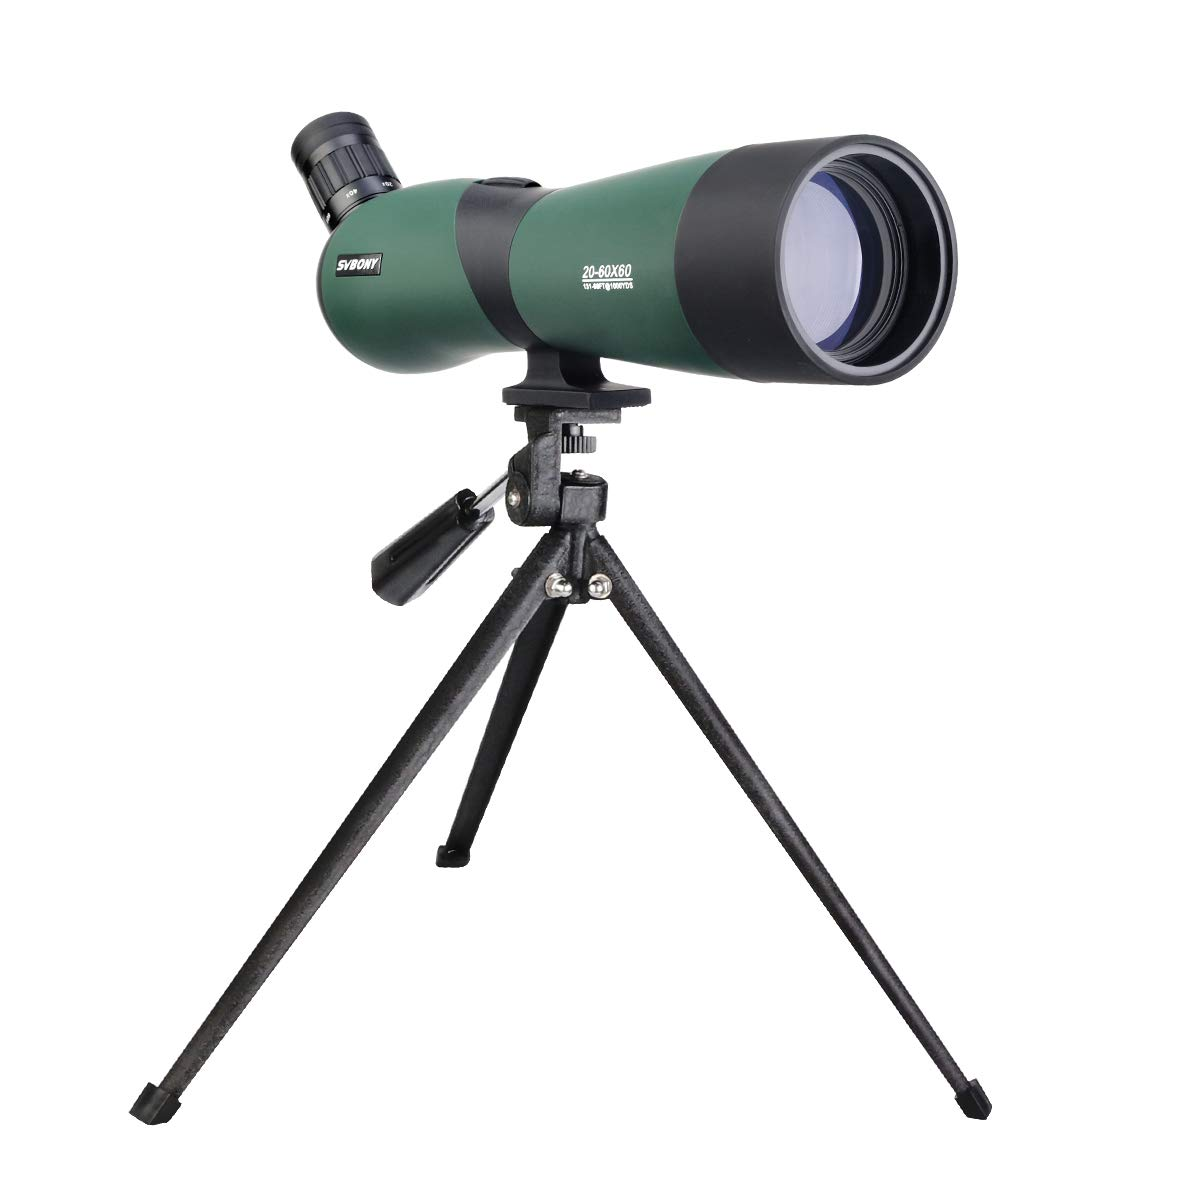 SVBONY SV403 Spotting Scope Hunting with Tripod Zoom 20-60x60mm Spotting Scopes for Target Shooting Bird Watching with Soft Case by SVBONY